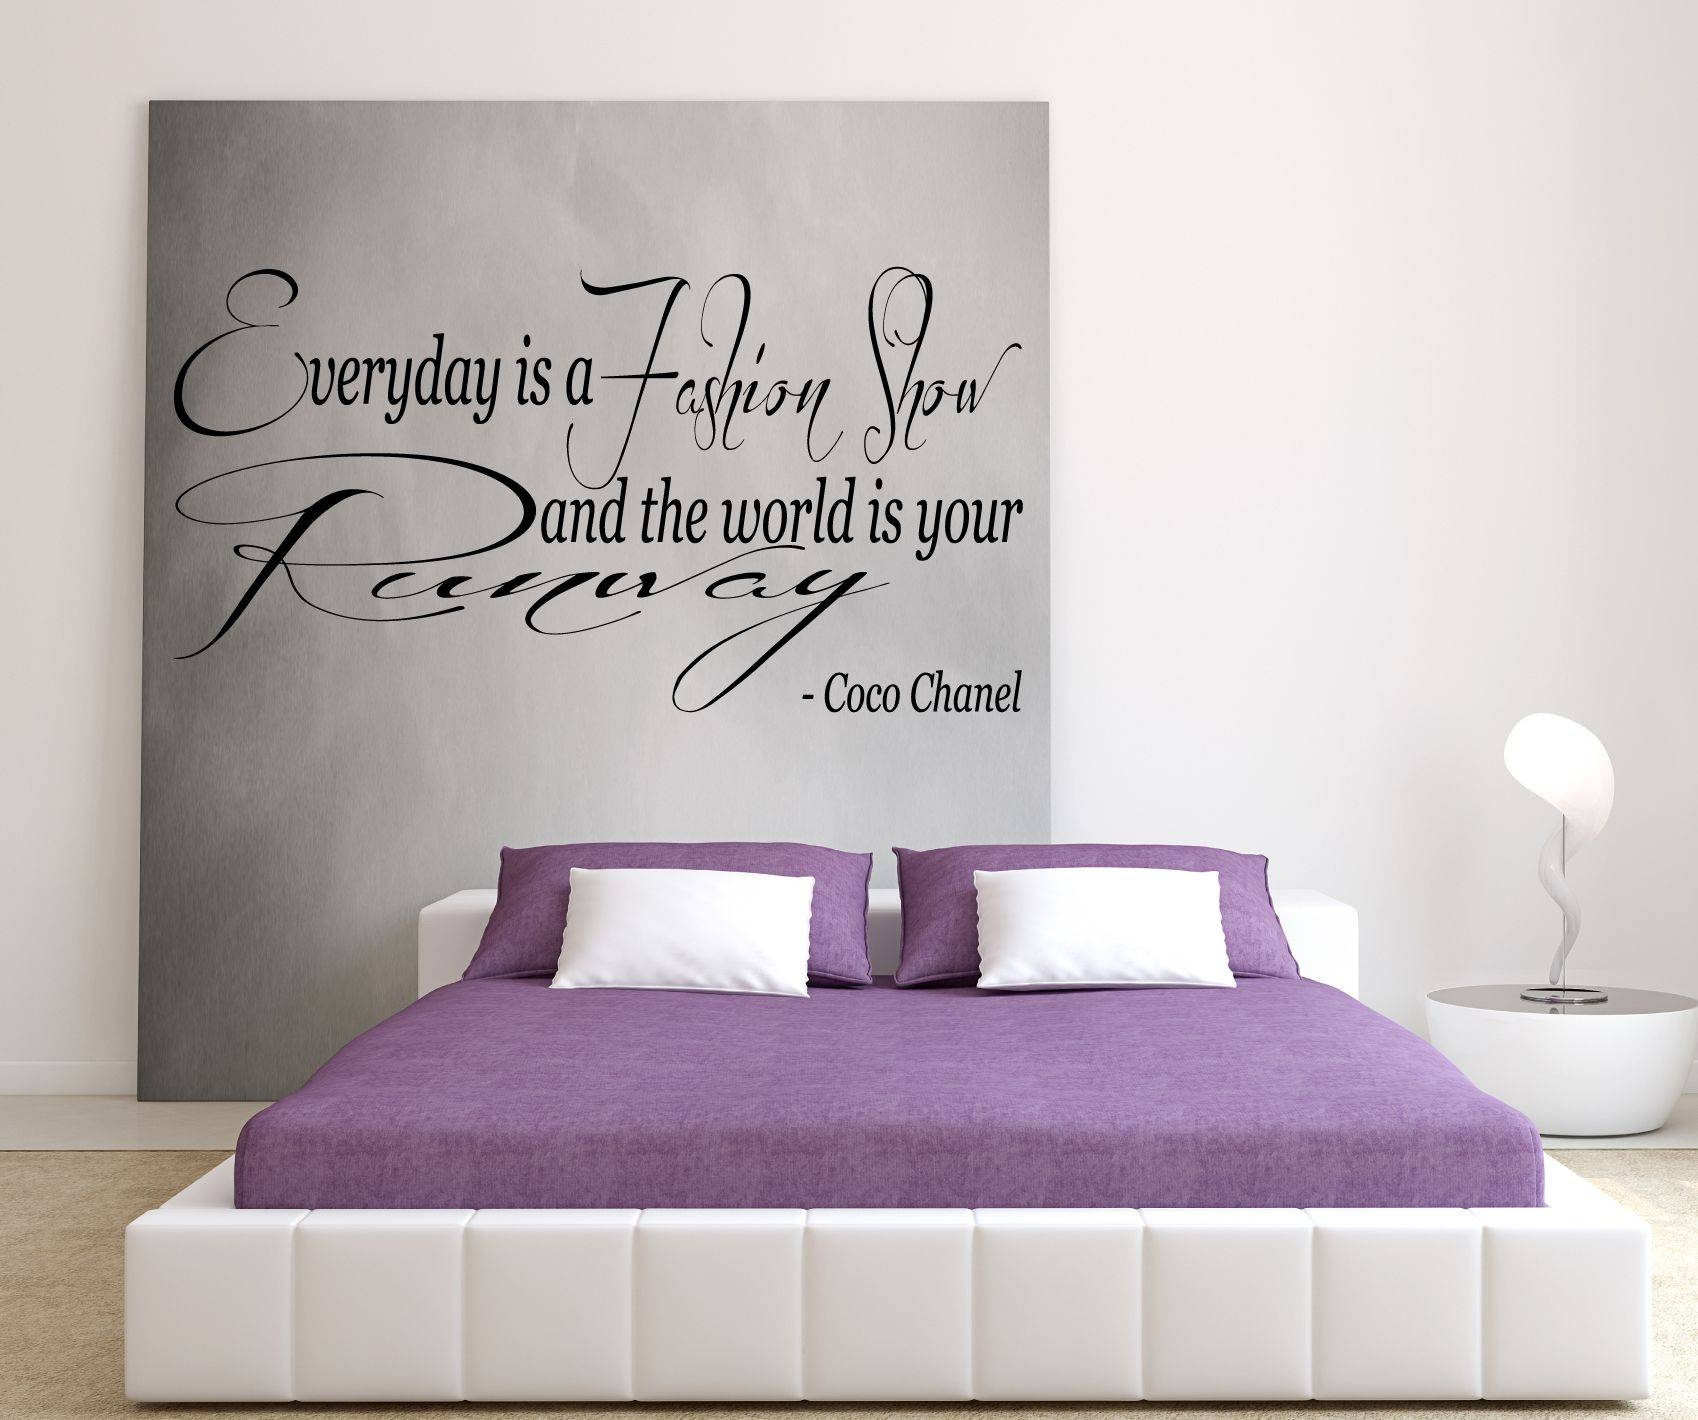 Coco Chanel – Everyday Is A Fashion Show And The World Is Your Within Most Up To Date Coco Chanel Wall Decals (View 12 of 25)